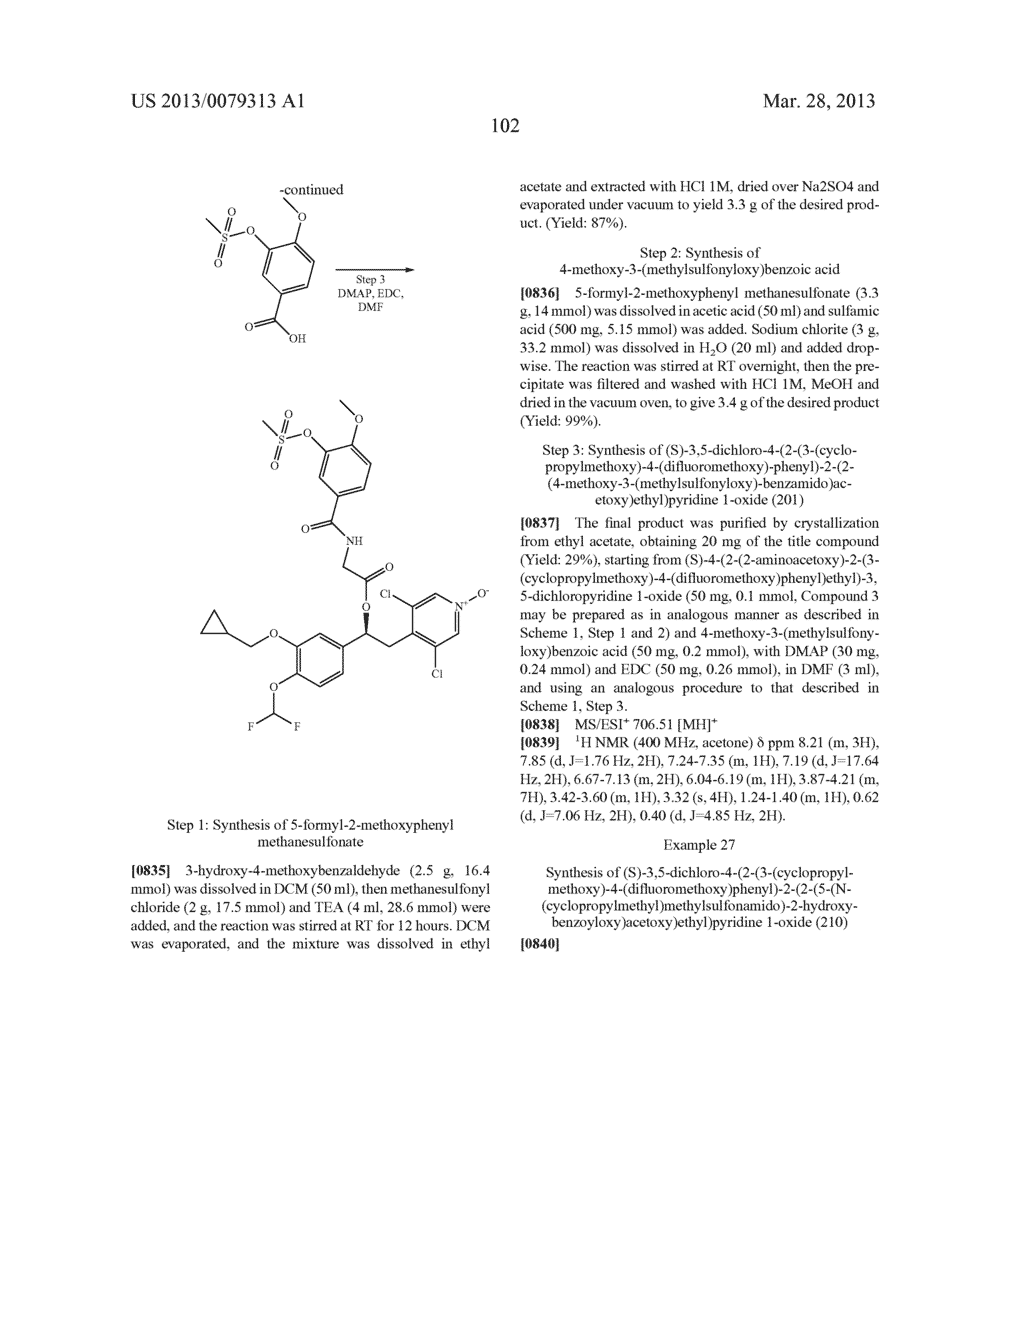 DERIVATIVES OF 1-PHENYL-2-PYRIDINYL ALKYL ALCOHOLS AS PHOSPHODIESTERASE     INHIBITORS - diagram, schematic, and image 103